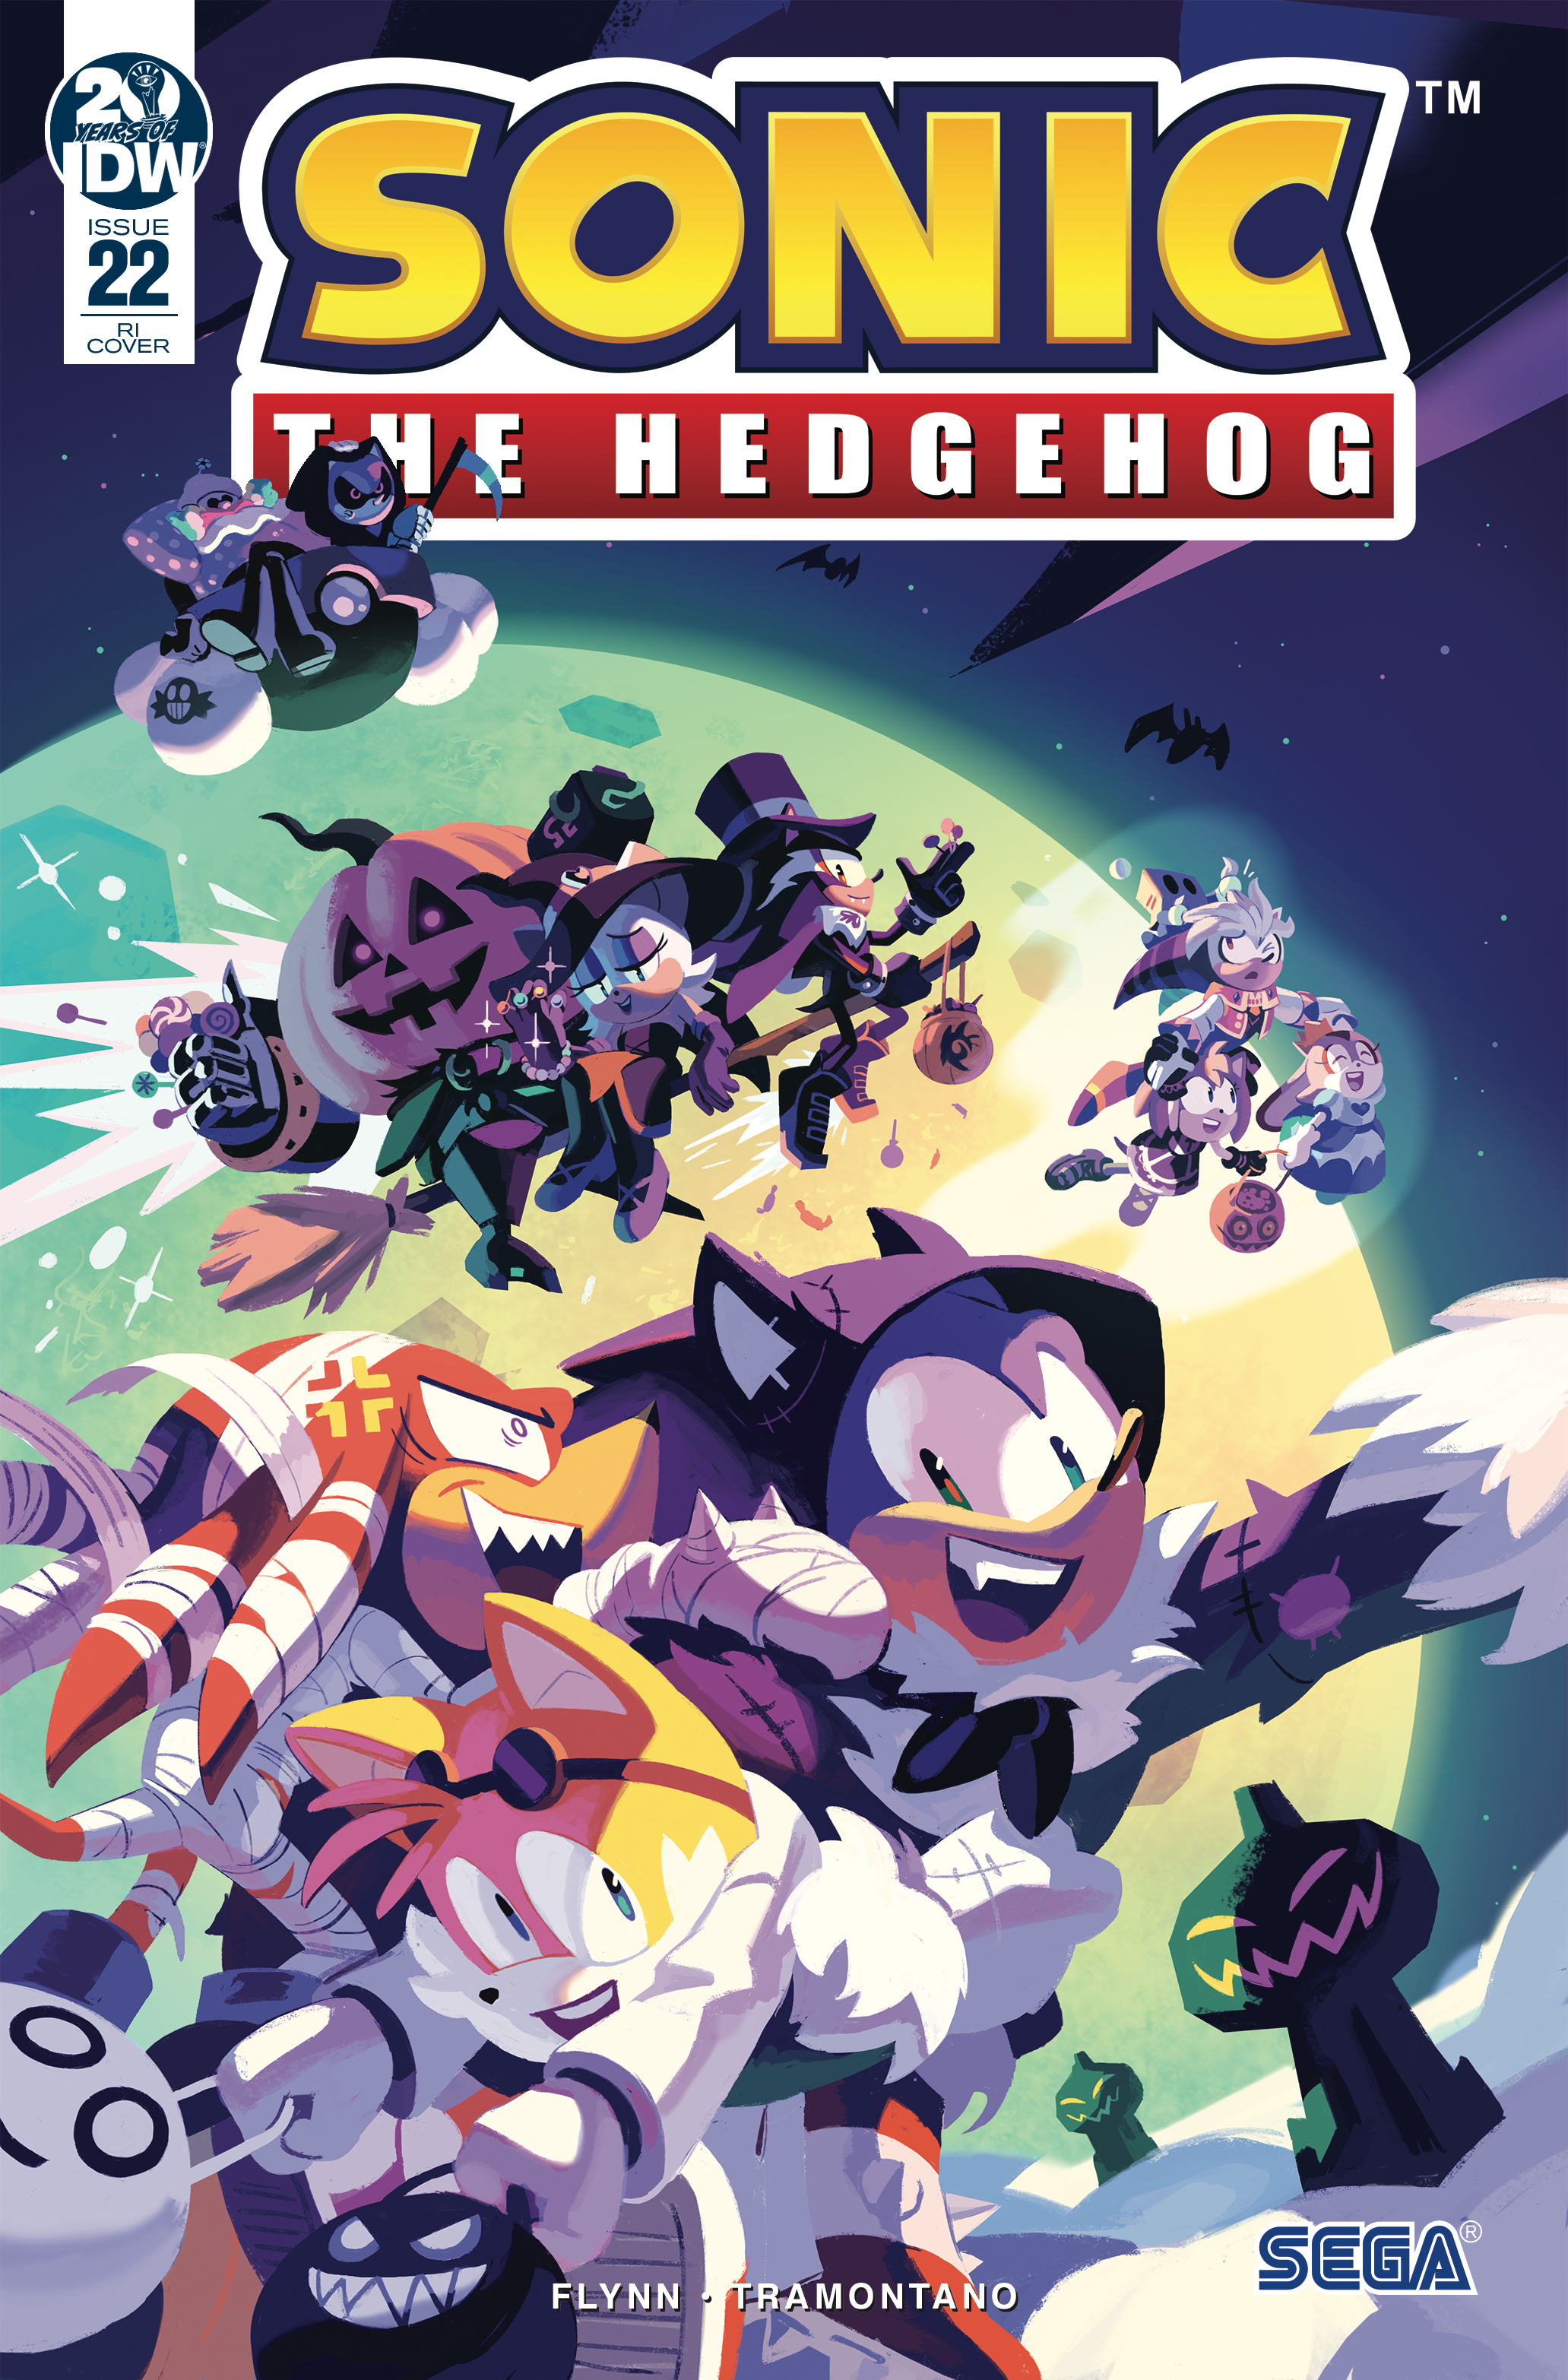 IDW Sonic the Hedgehog Issue 22